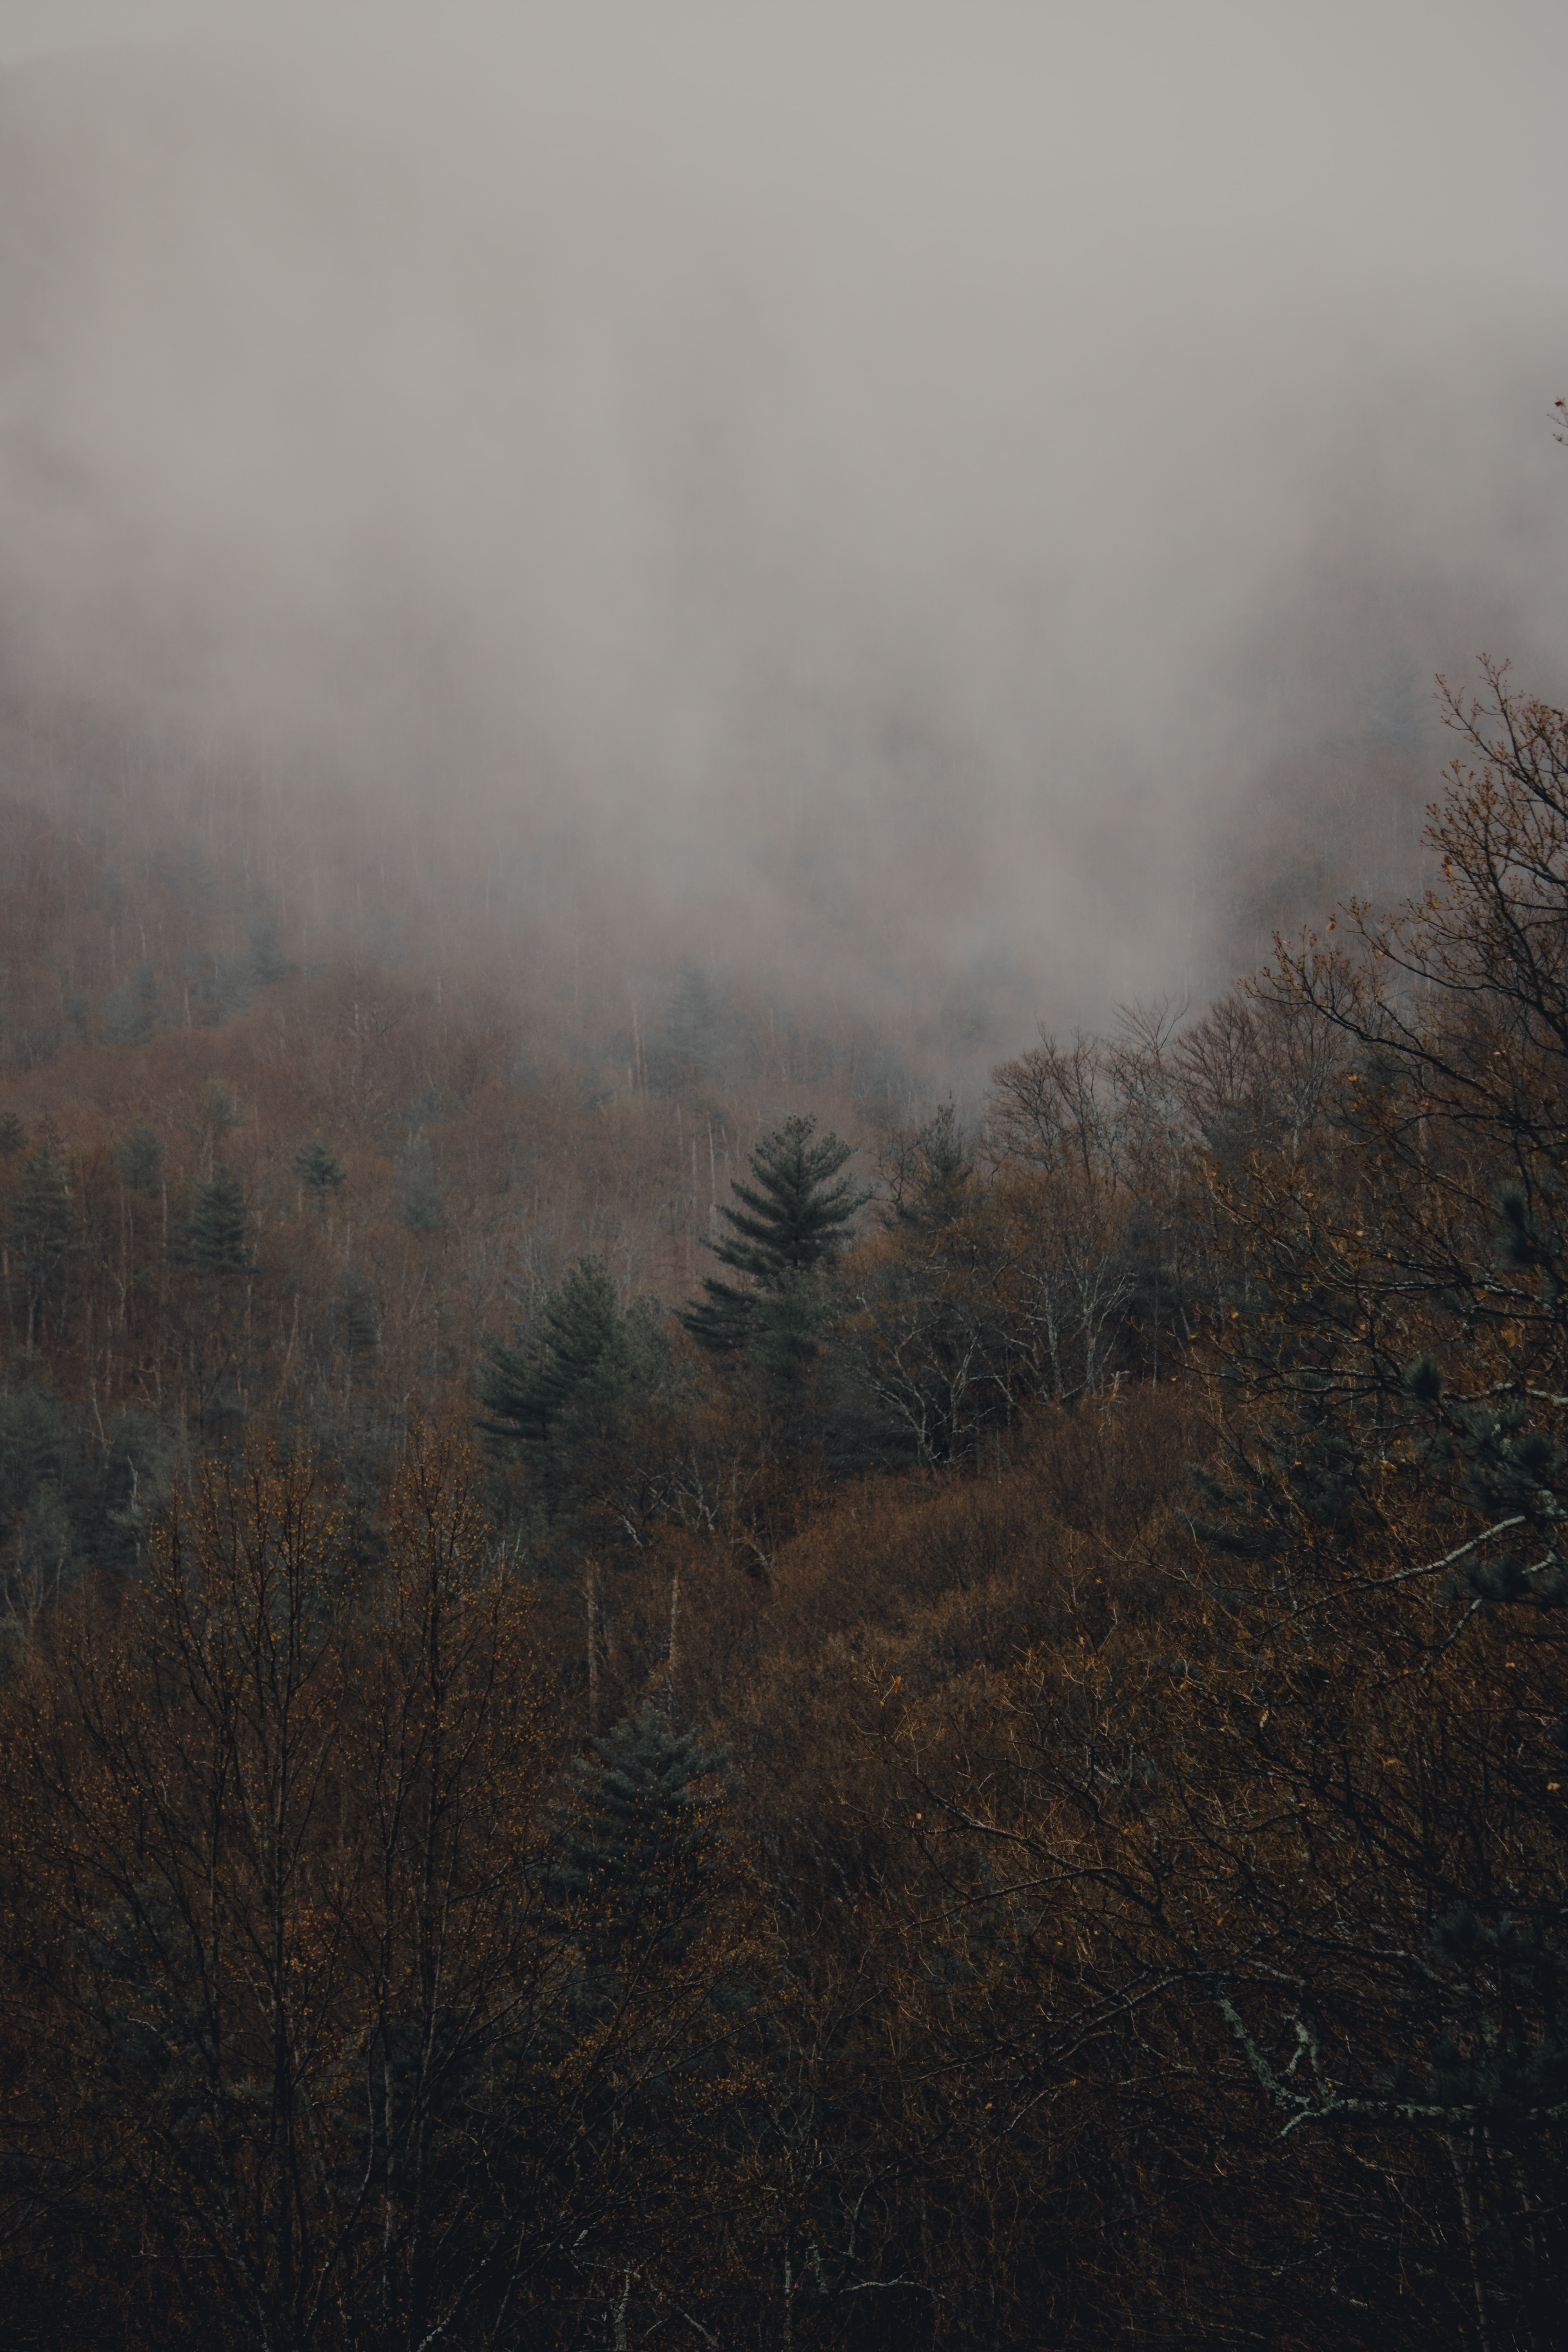 green and beige plants on foggy terrain during daytime